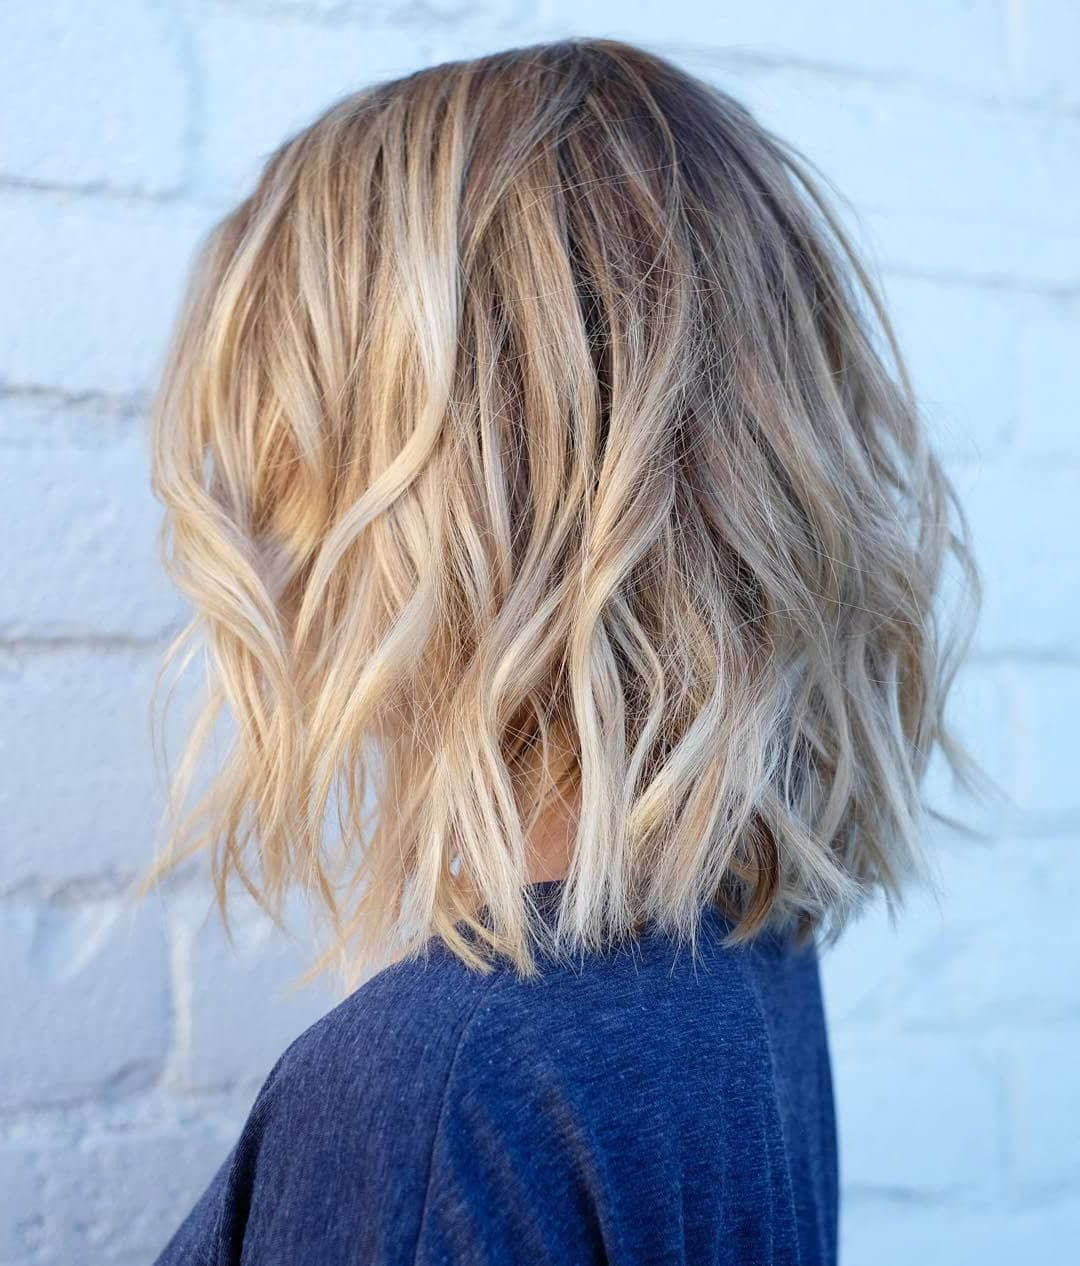 50 Fresh Short Blonde Hair Ideas To Update Your Style In 2018 Throughout White Blonde Curly Layered Bob Hairstyles (View 13 of 20)